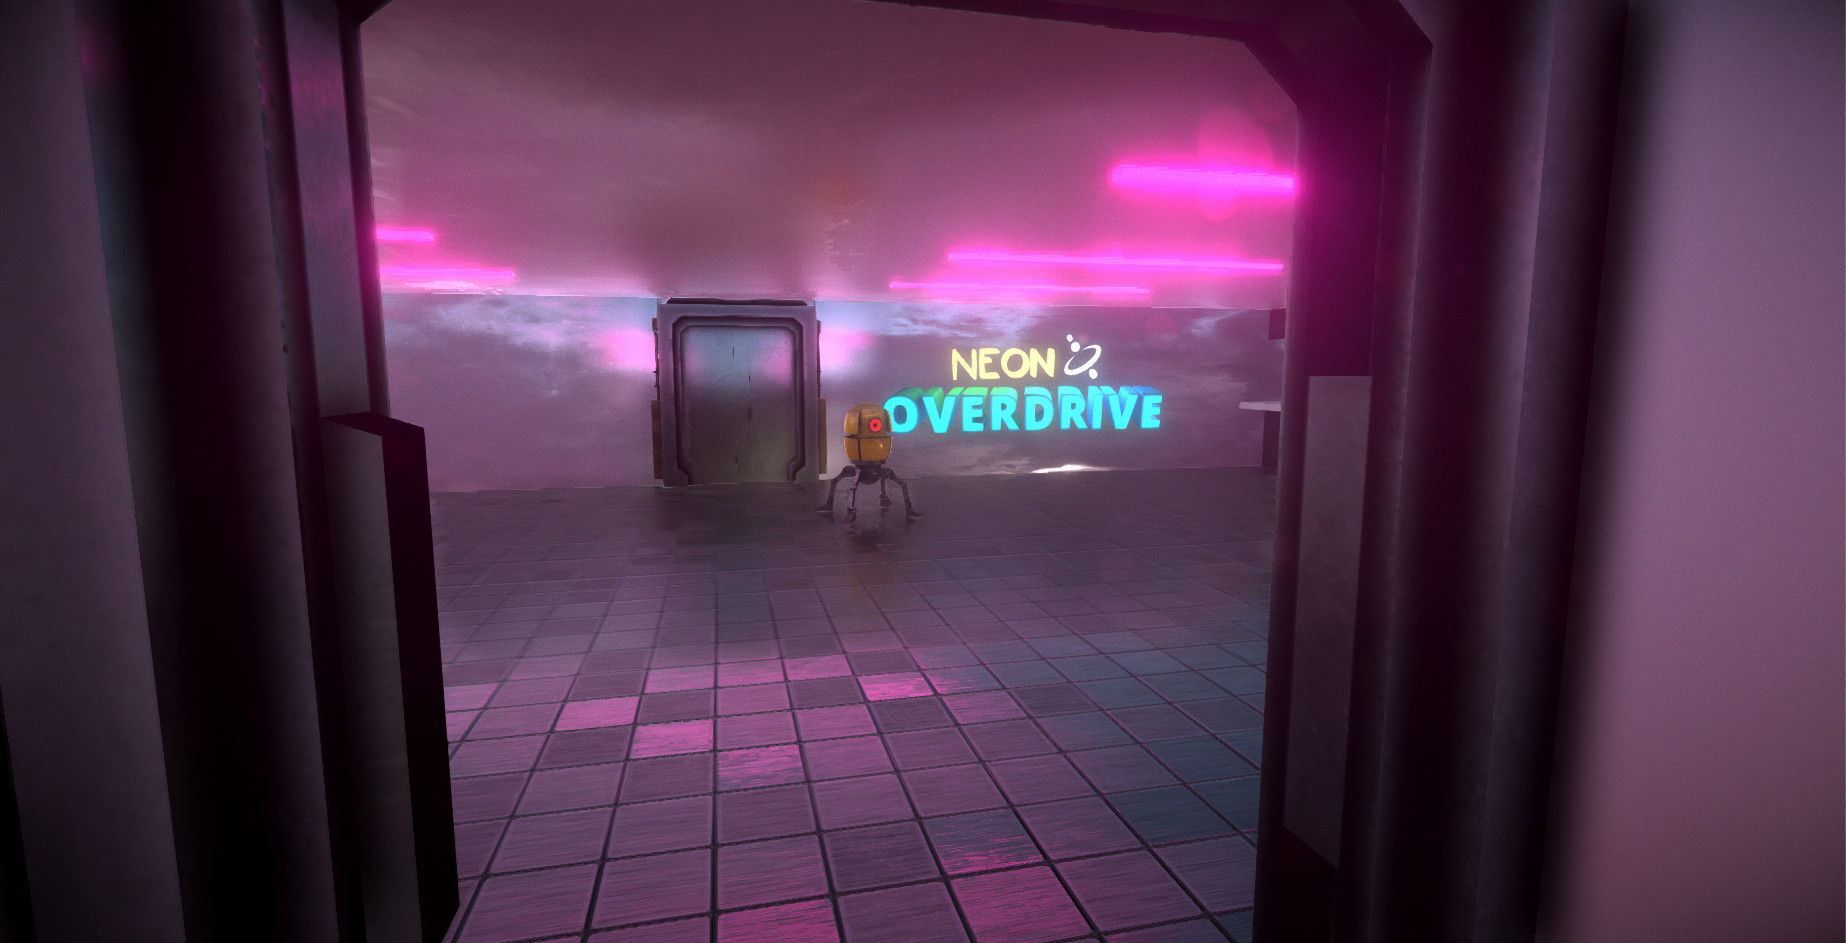 Neon Overdrive